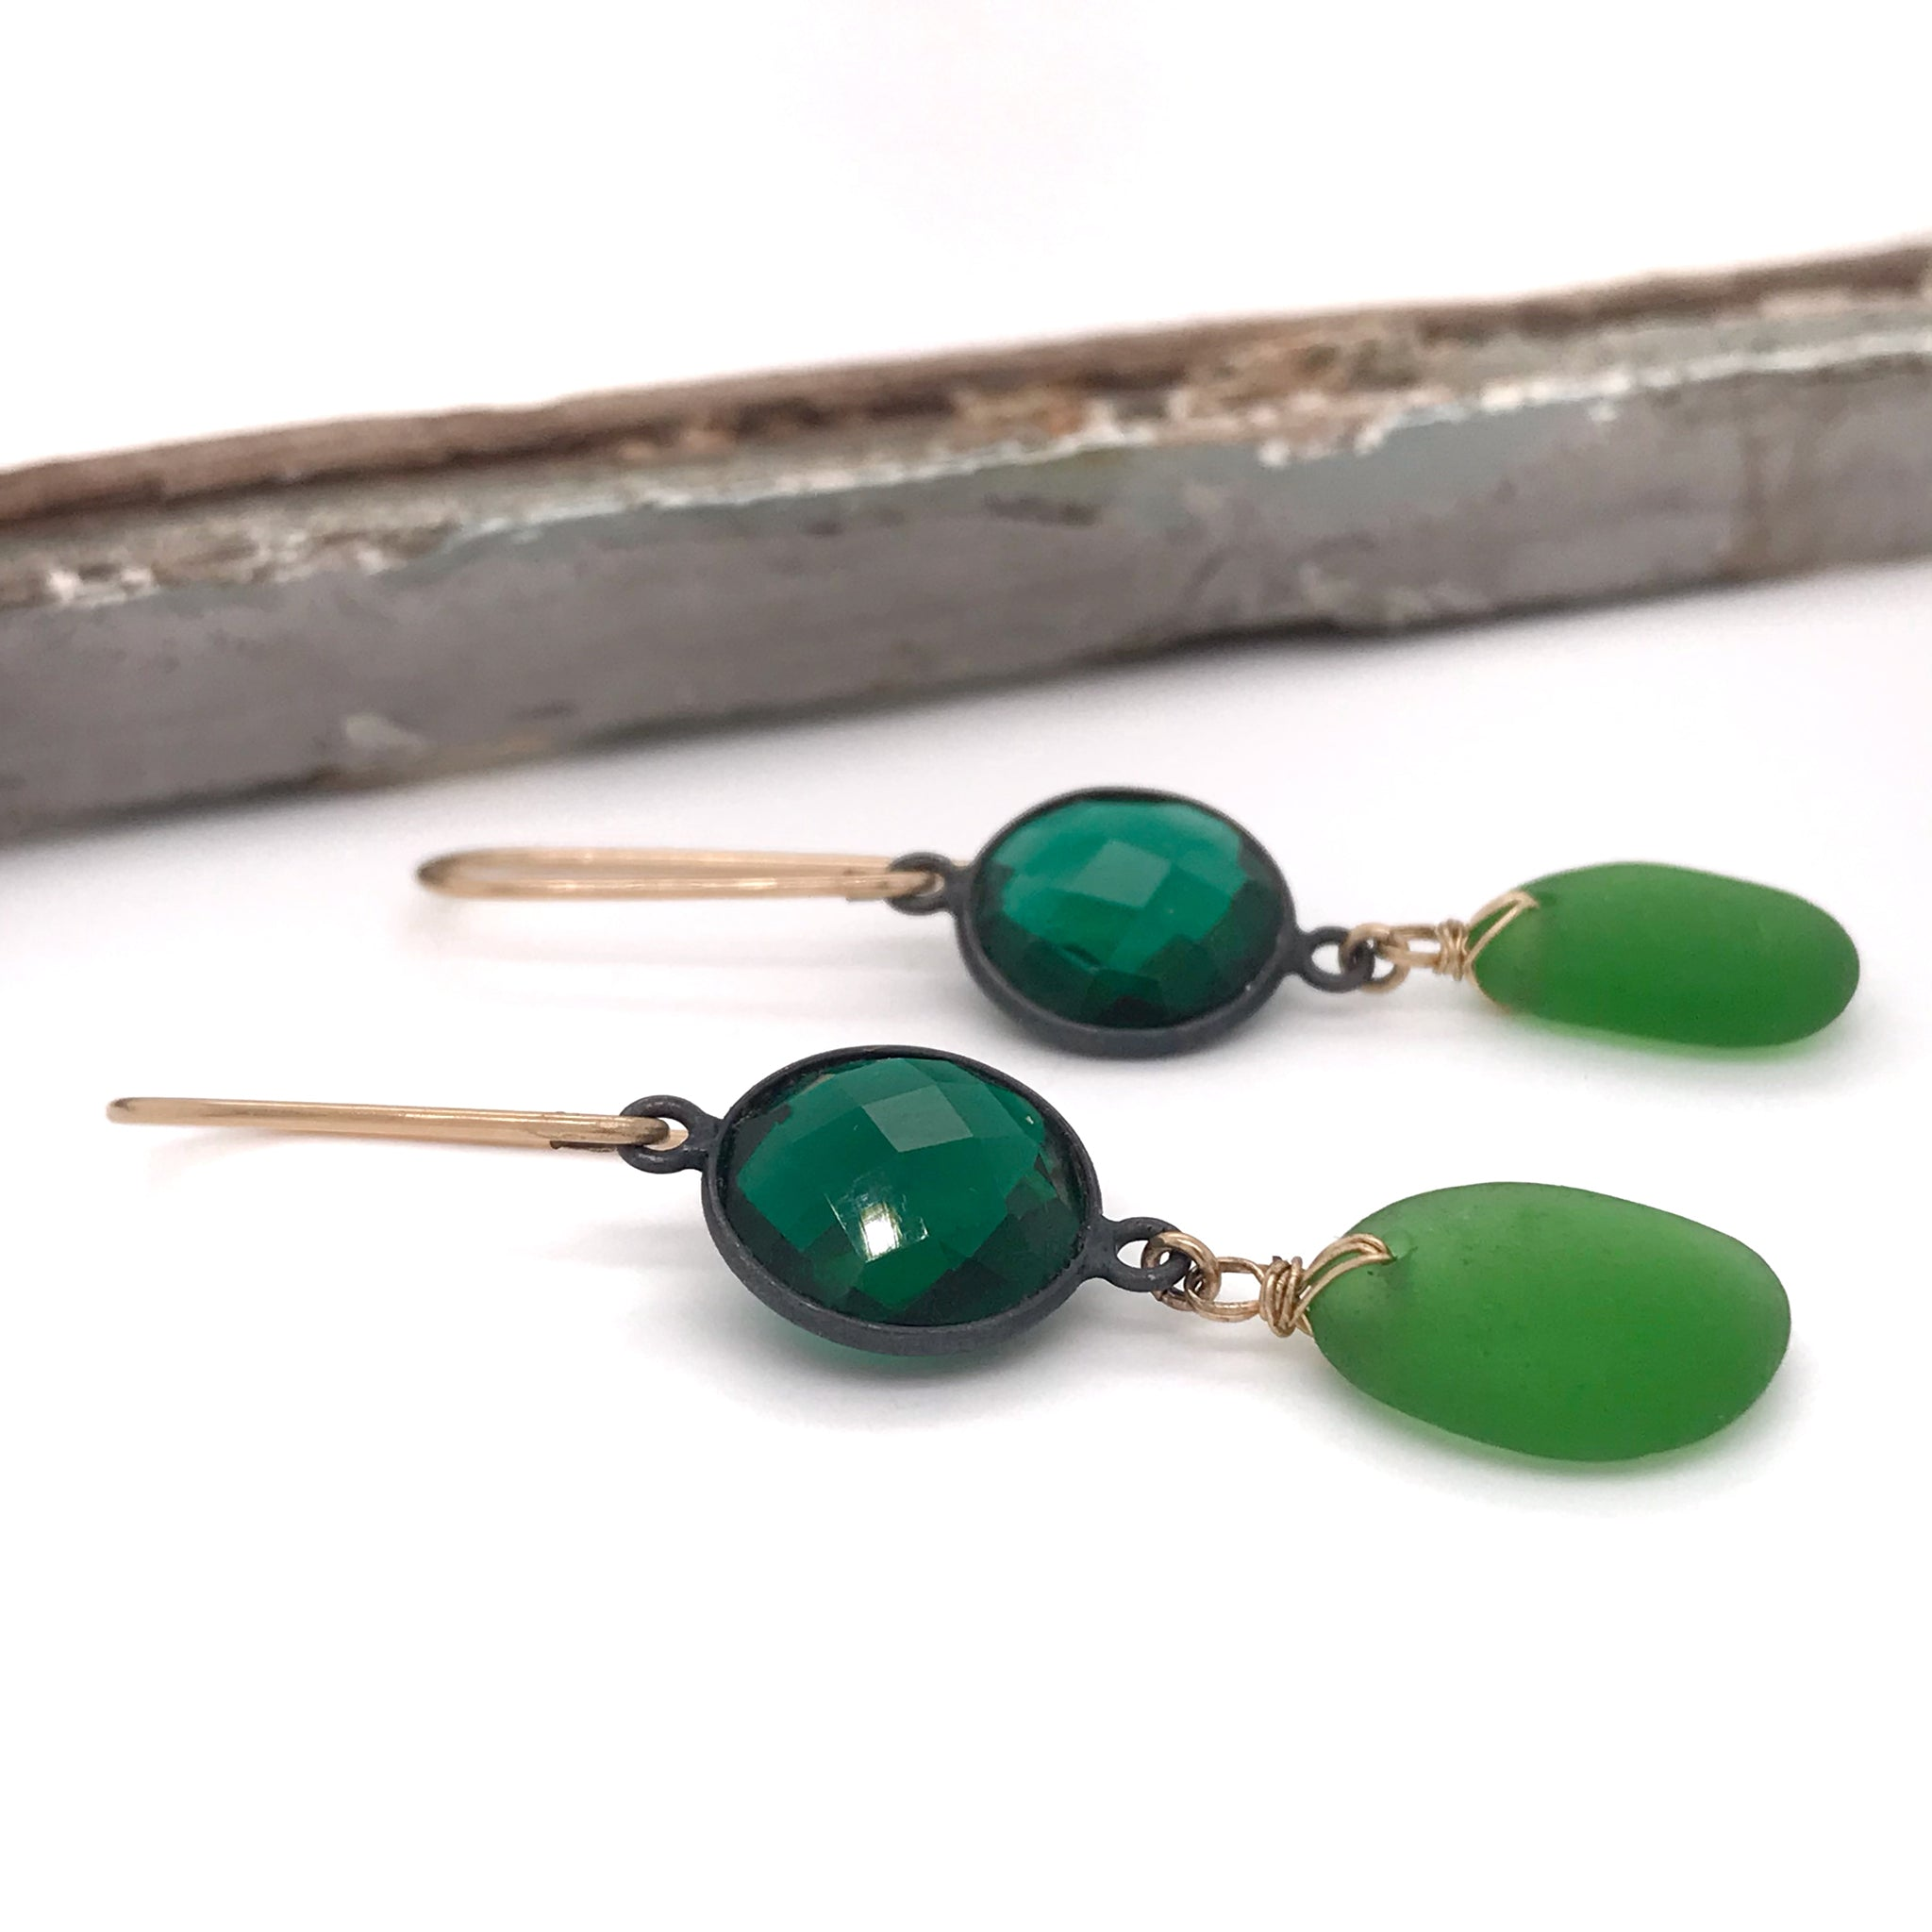 Christmas party earrings Sydney green sea glass and green quartz kriket broadhurst jewellery Australia